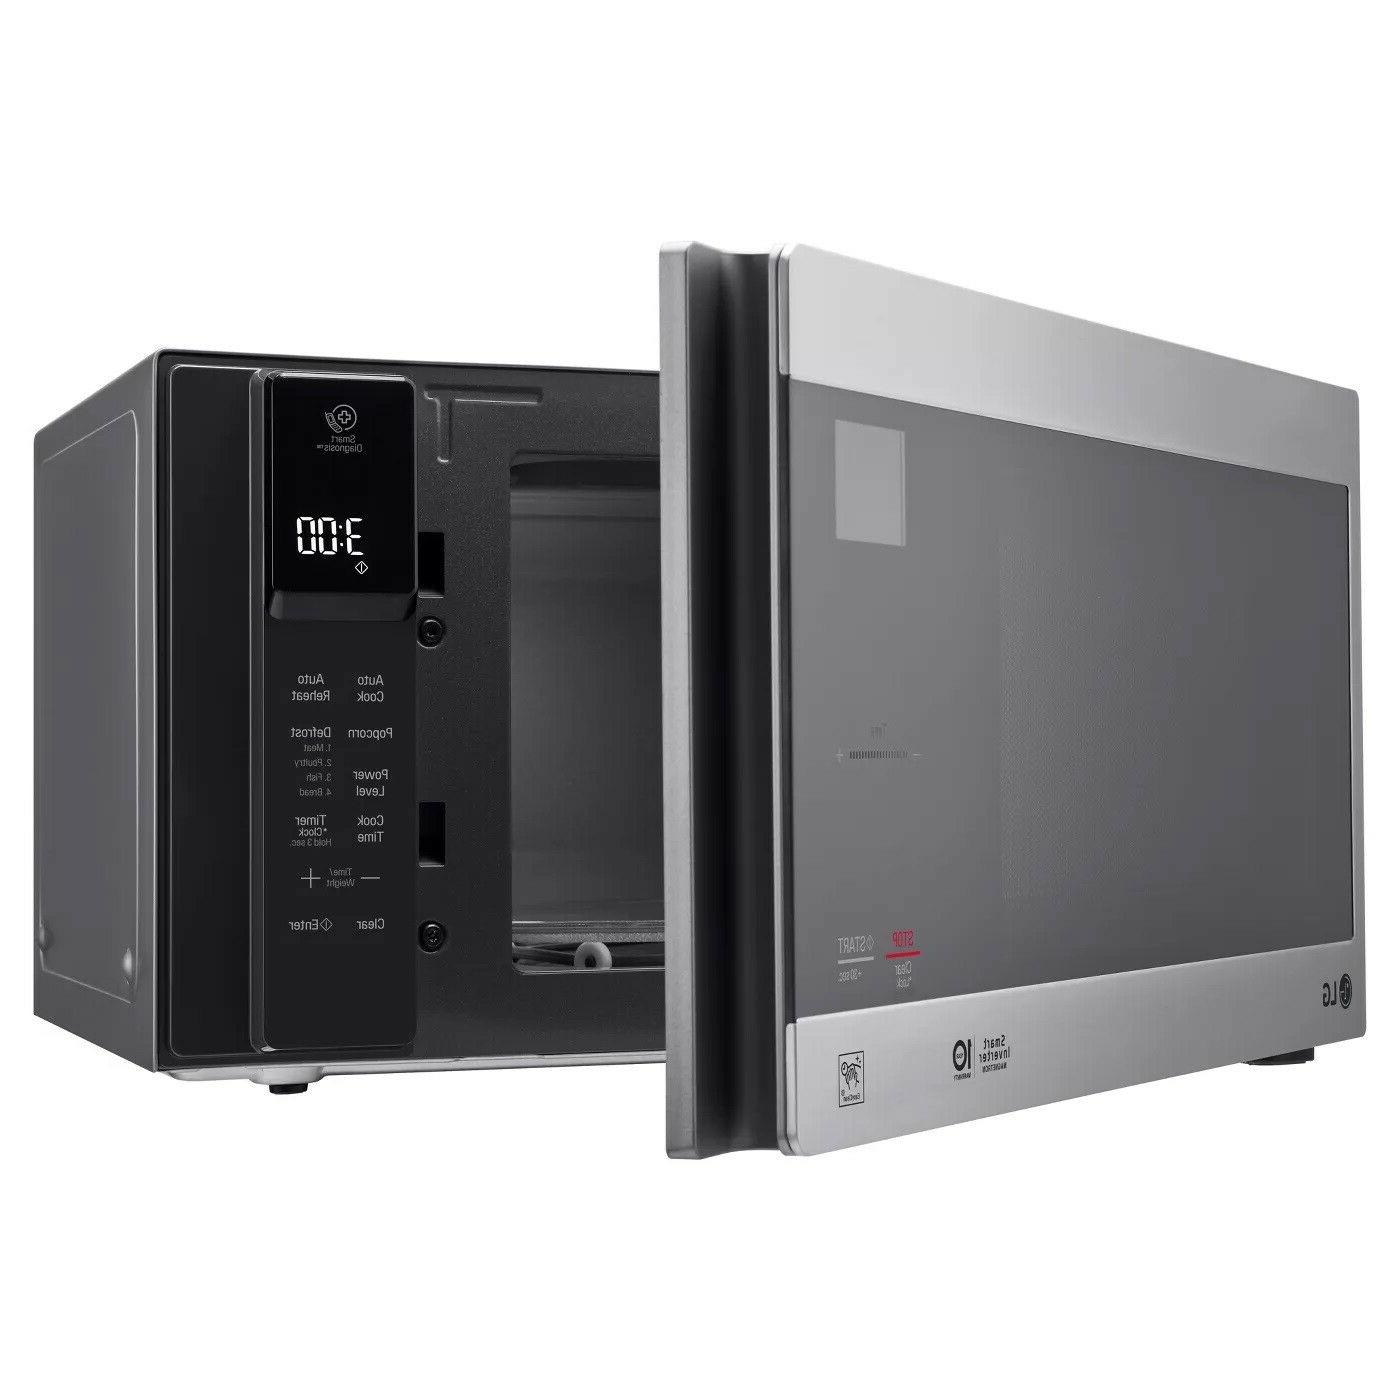 LG LMC0975ST 1000W Microwave Oven